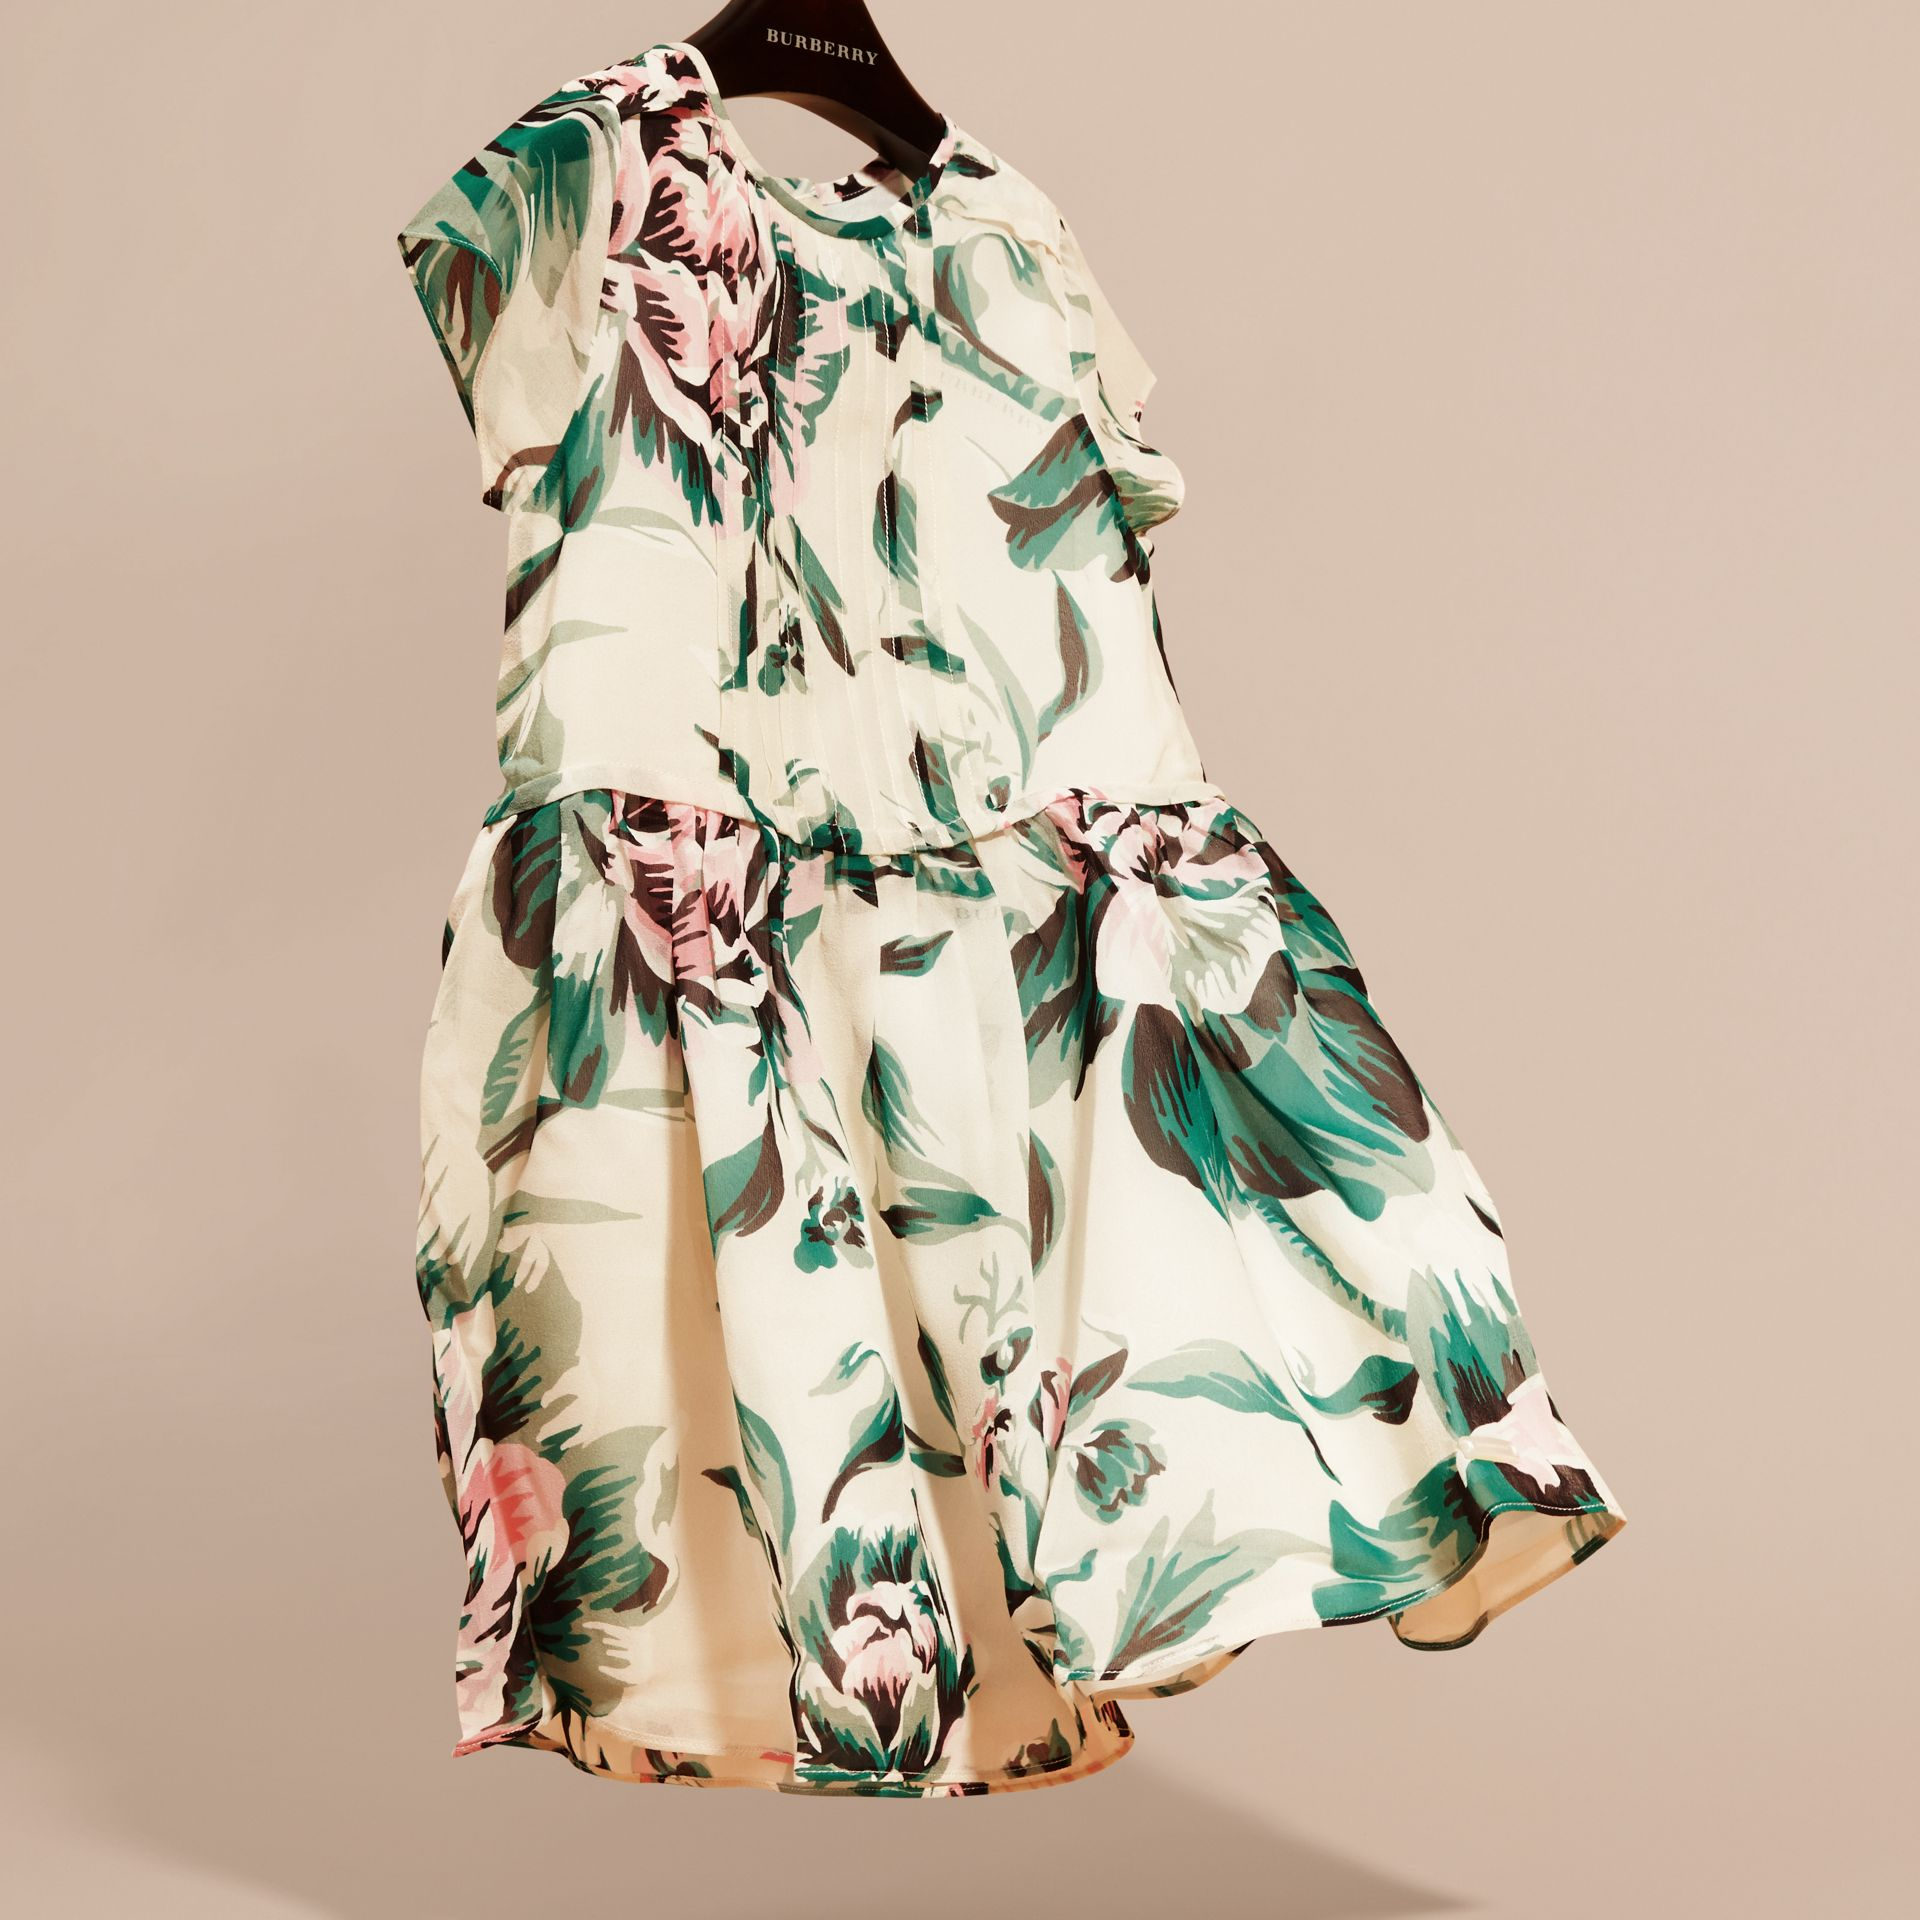 Emerald green Peony Rose Print Silk Dress Emerald Green - gallery image 3